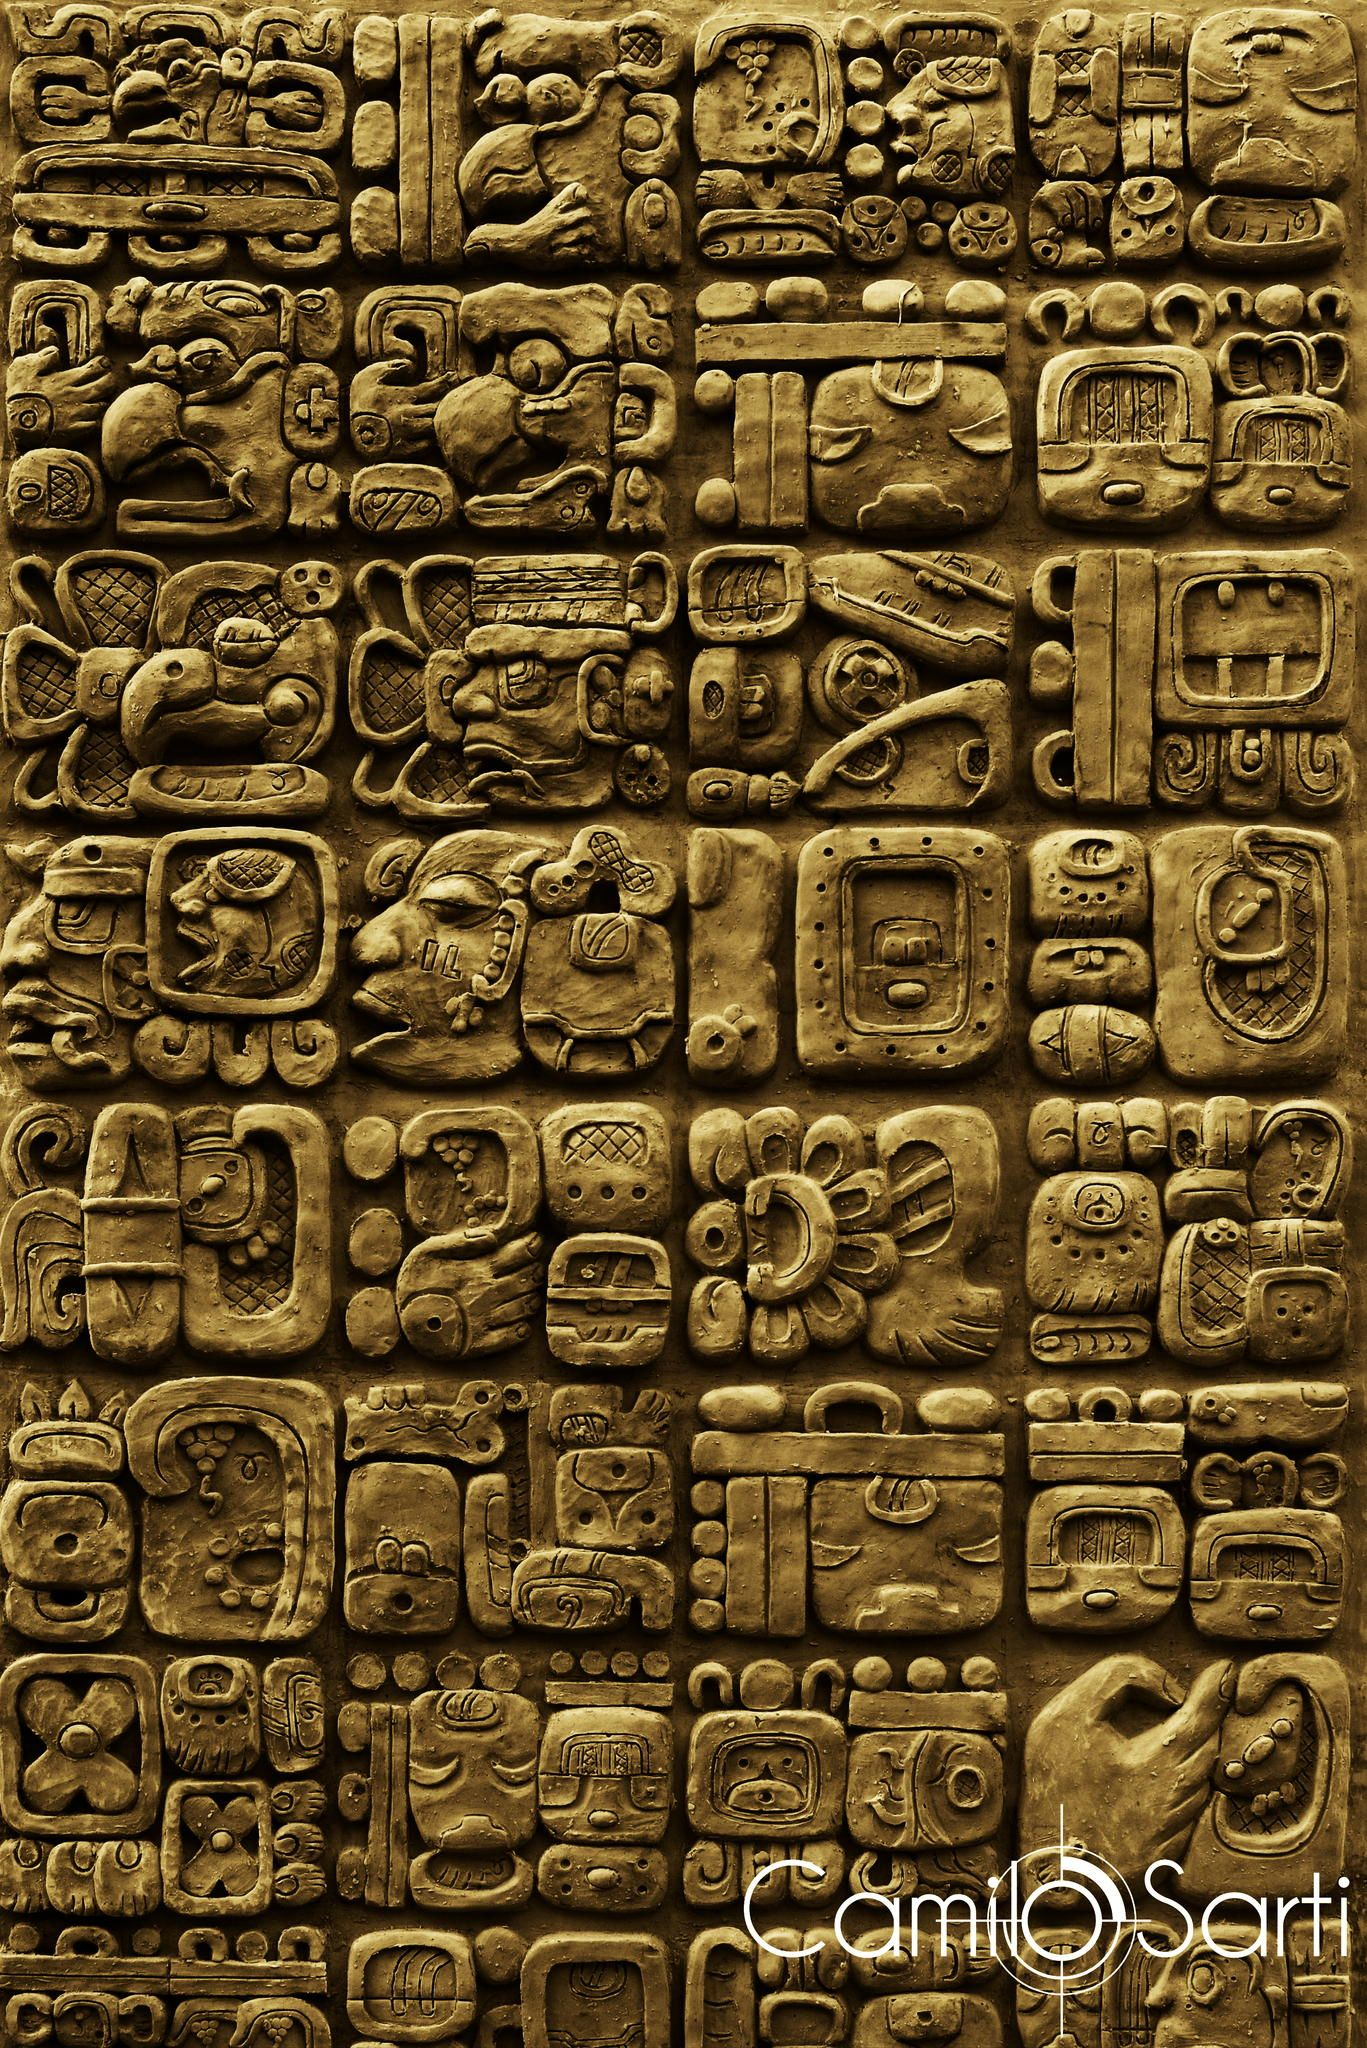 Arte Maya Guatemalteco Details Of Maya Glyphs On A Stelae From The Archaeological Site Of